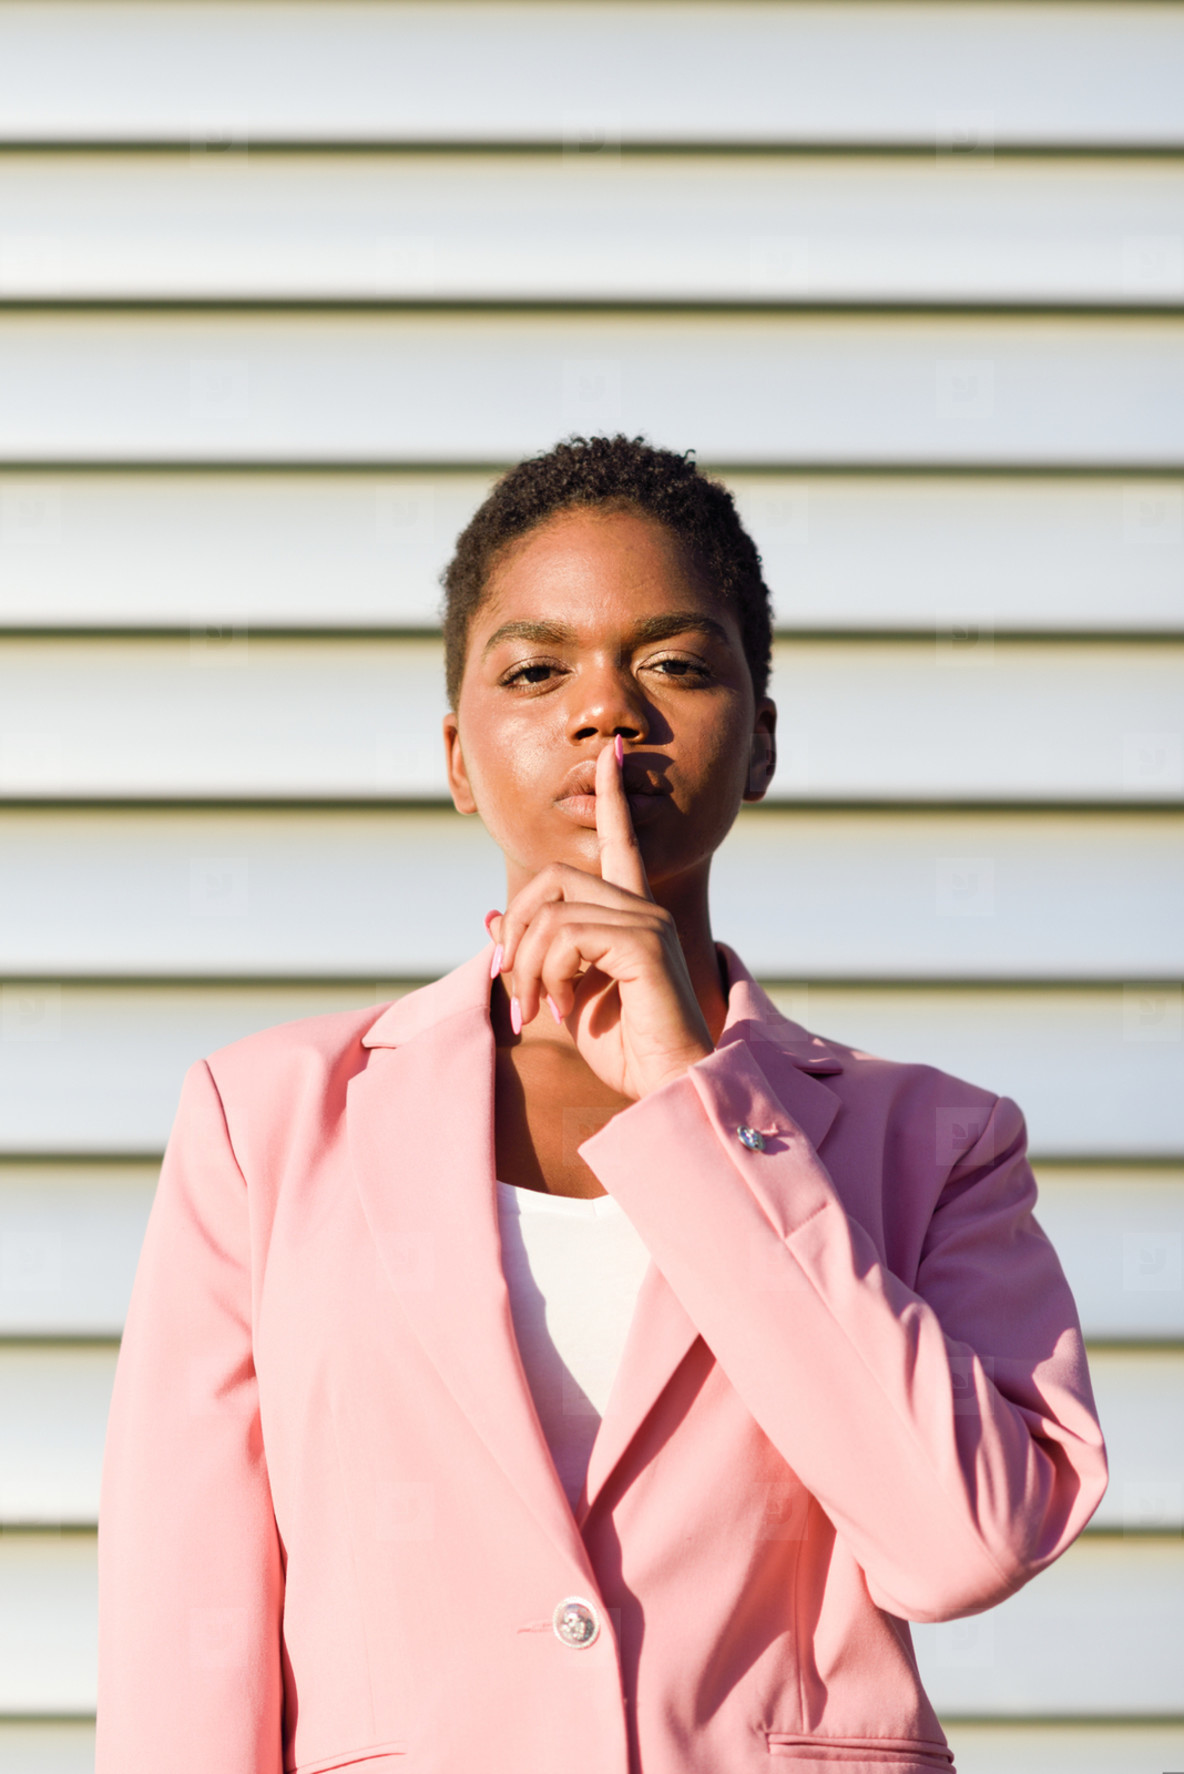 African American business woman doing silence gesture